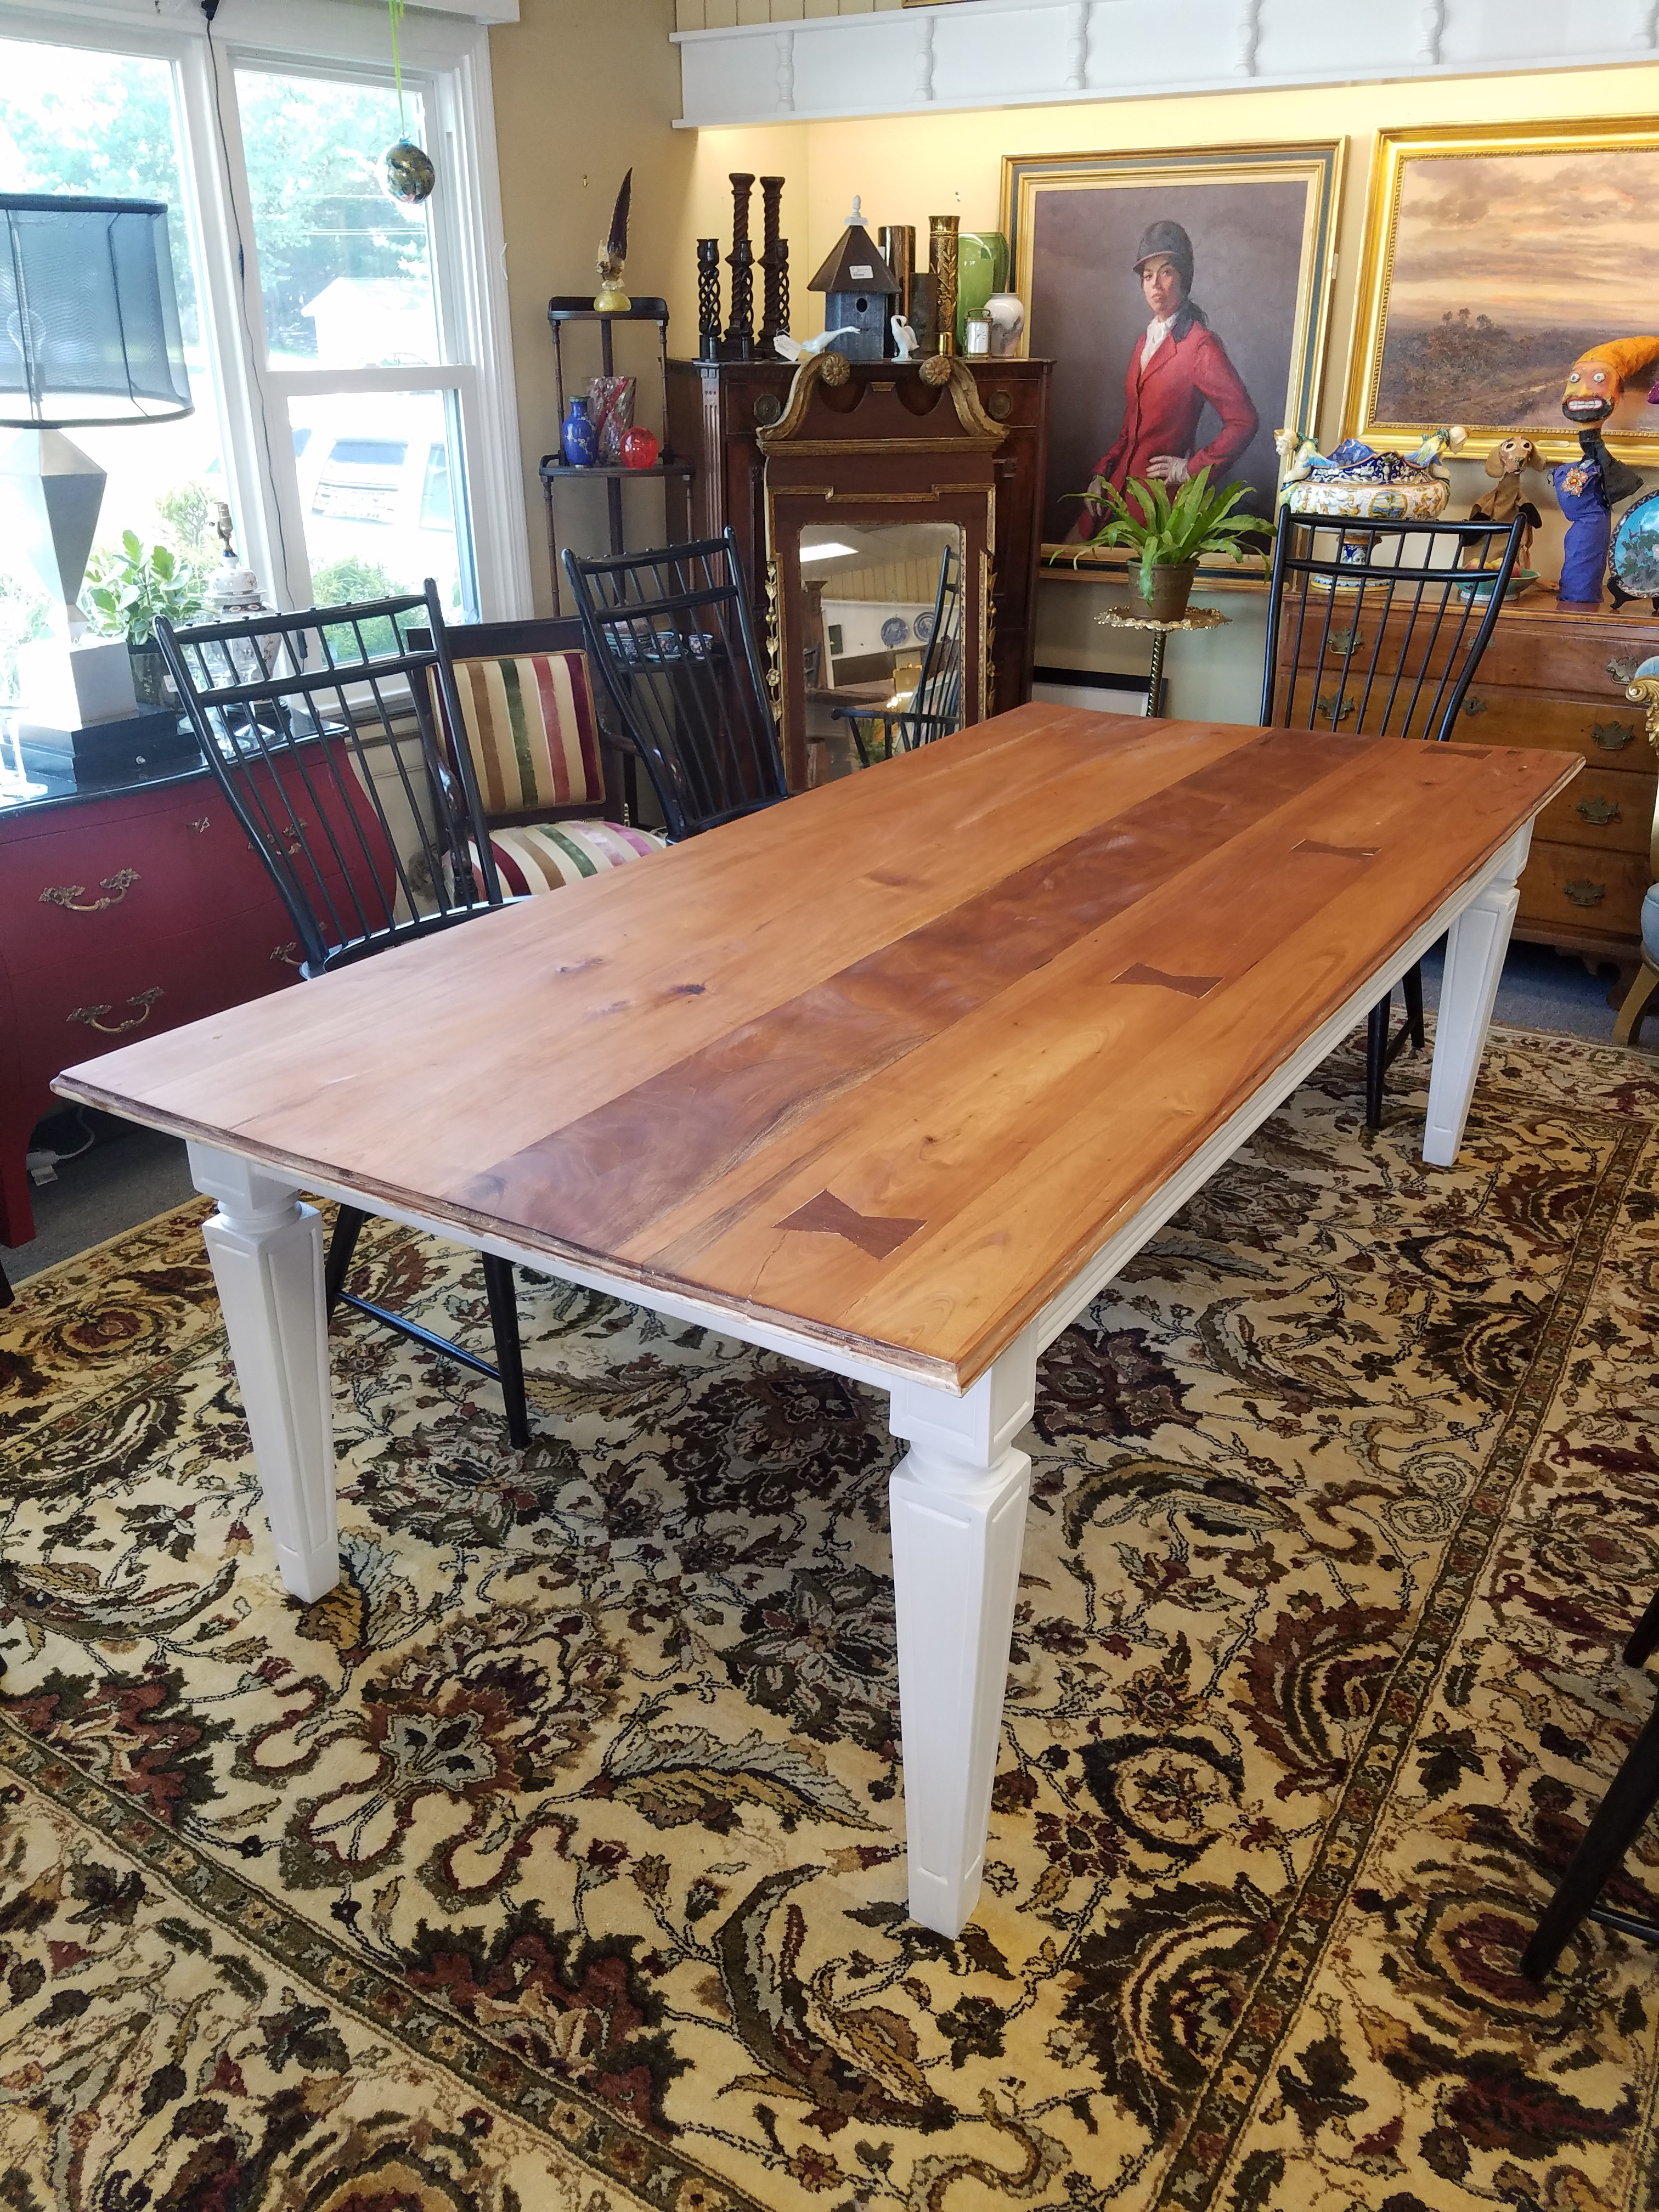 Mahogany Classic Farm Table With White Painted Taper Leg Base. The Top With  A Beeswax